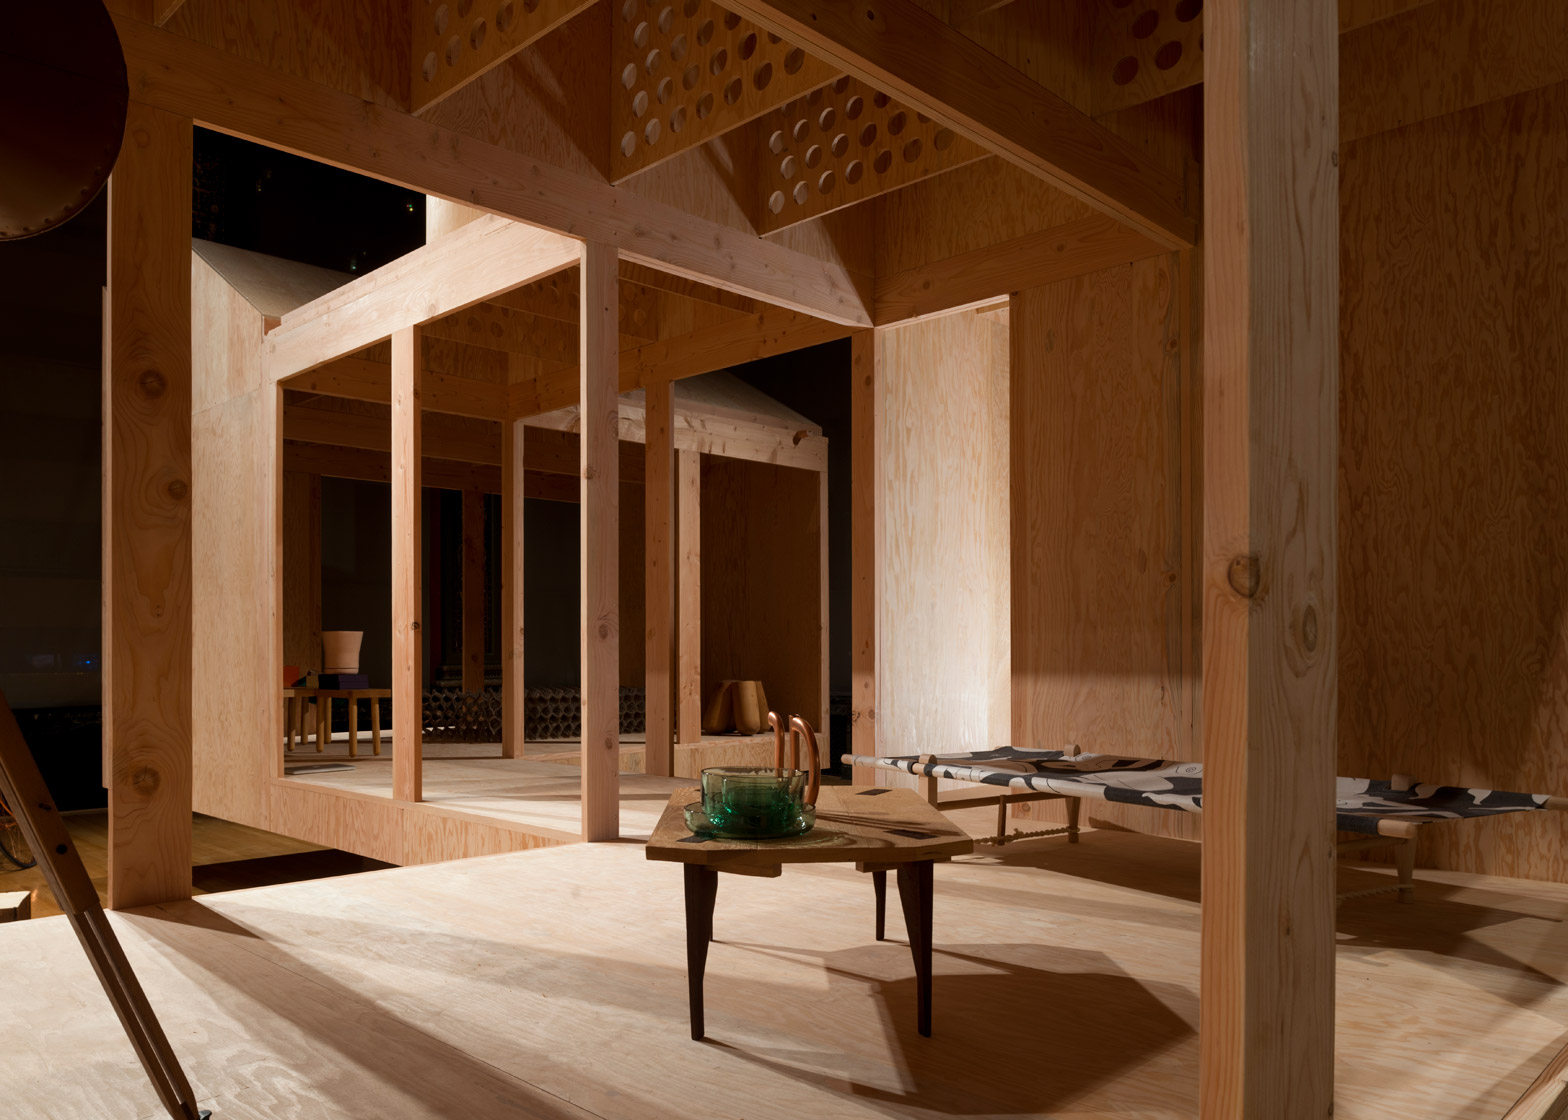 MOS Architects Corridor House at the 2015 Chicago Architecture Biennial